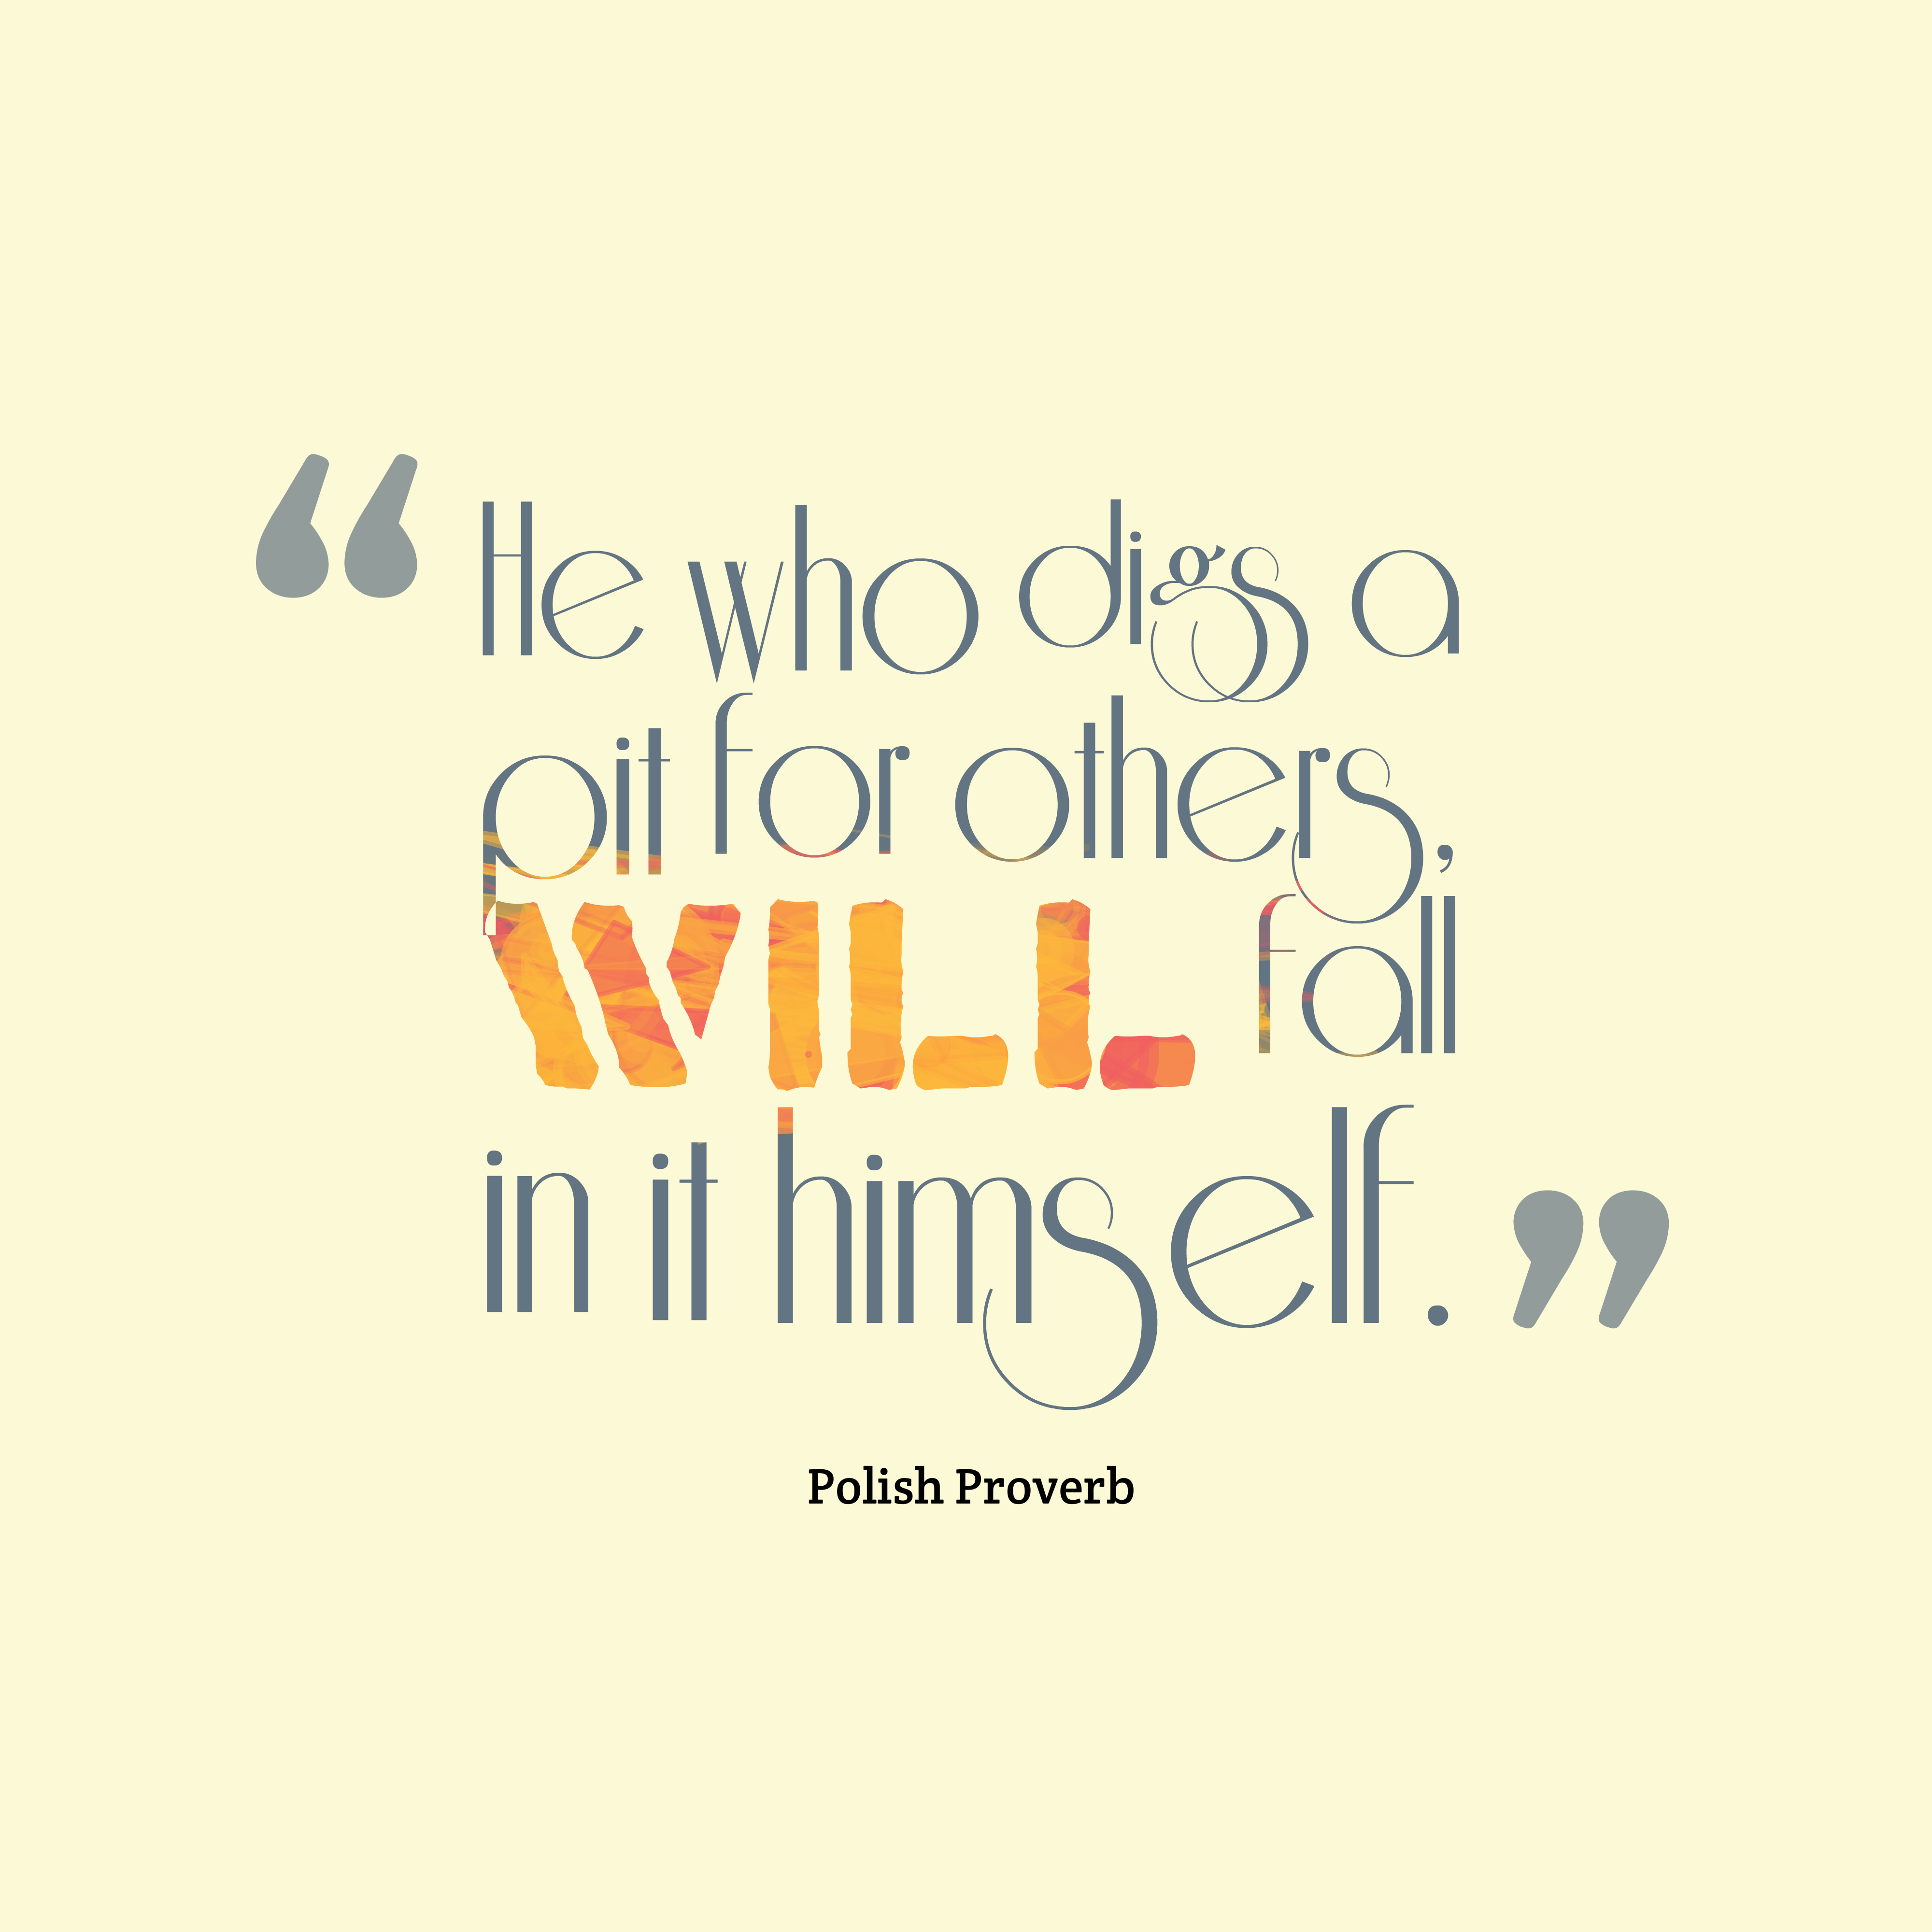 Quotes image of He who digs a pit for others, will fall in it himself.